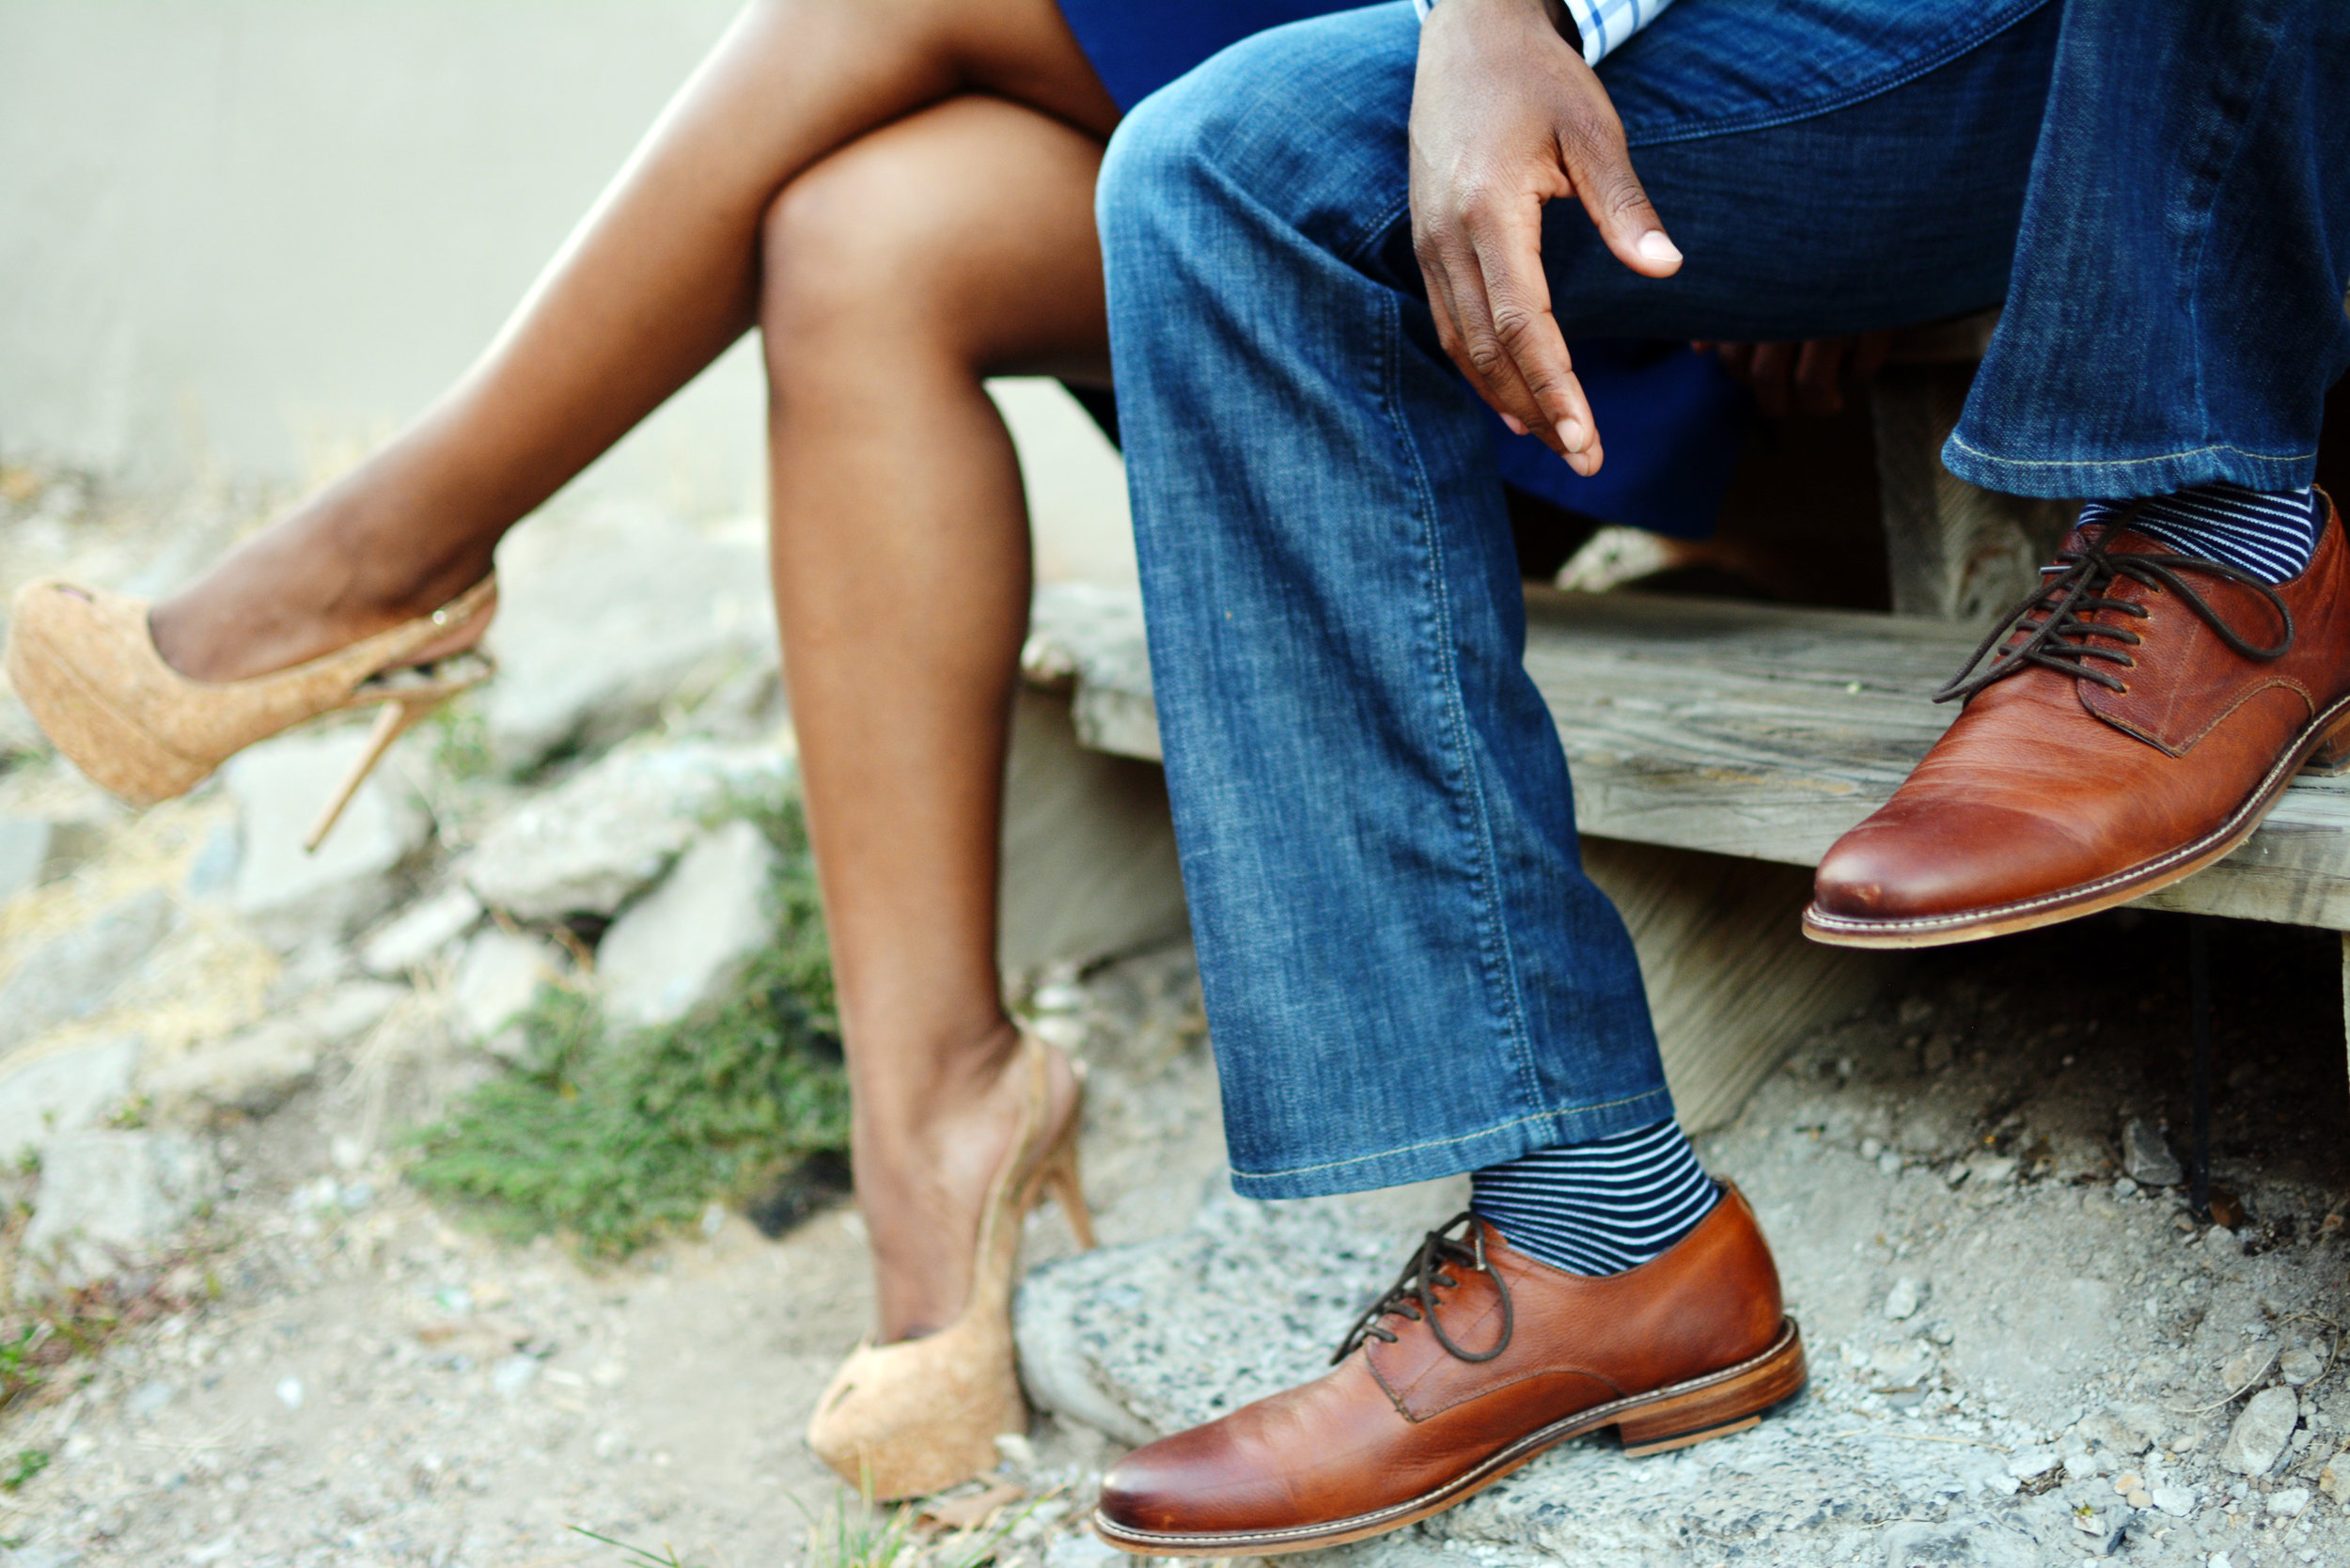 7 Rules for a Healthy Relationship